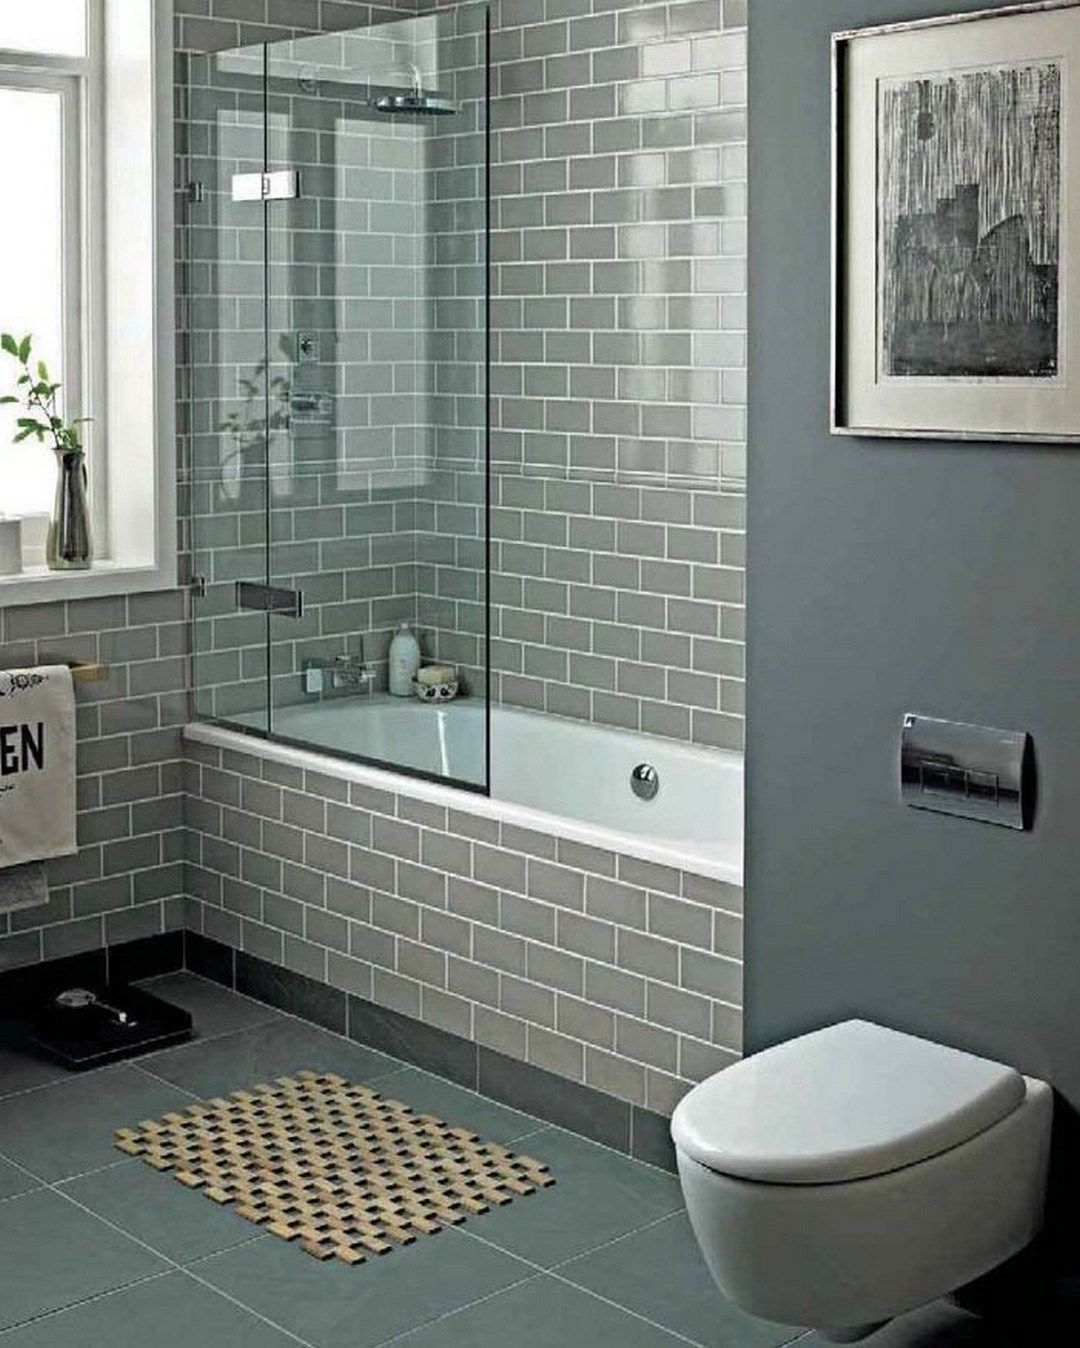 Salon De Bain Moderne whether it is teensy shower stall, powder room or a small